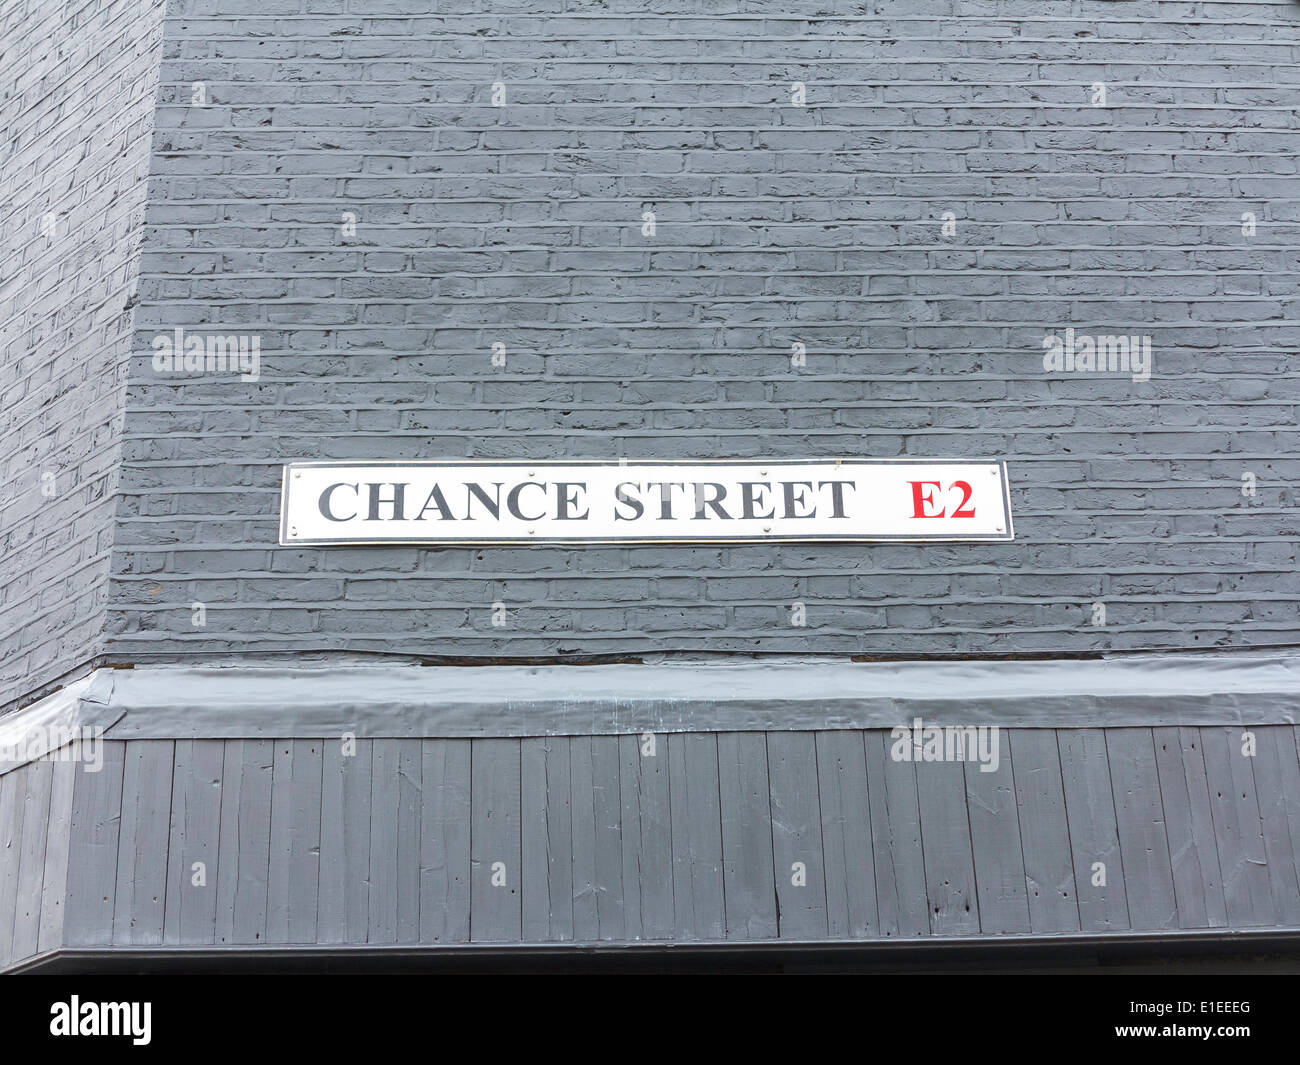 Chance Street street sign, London, England - Stock Image